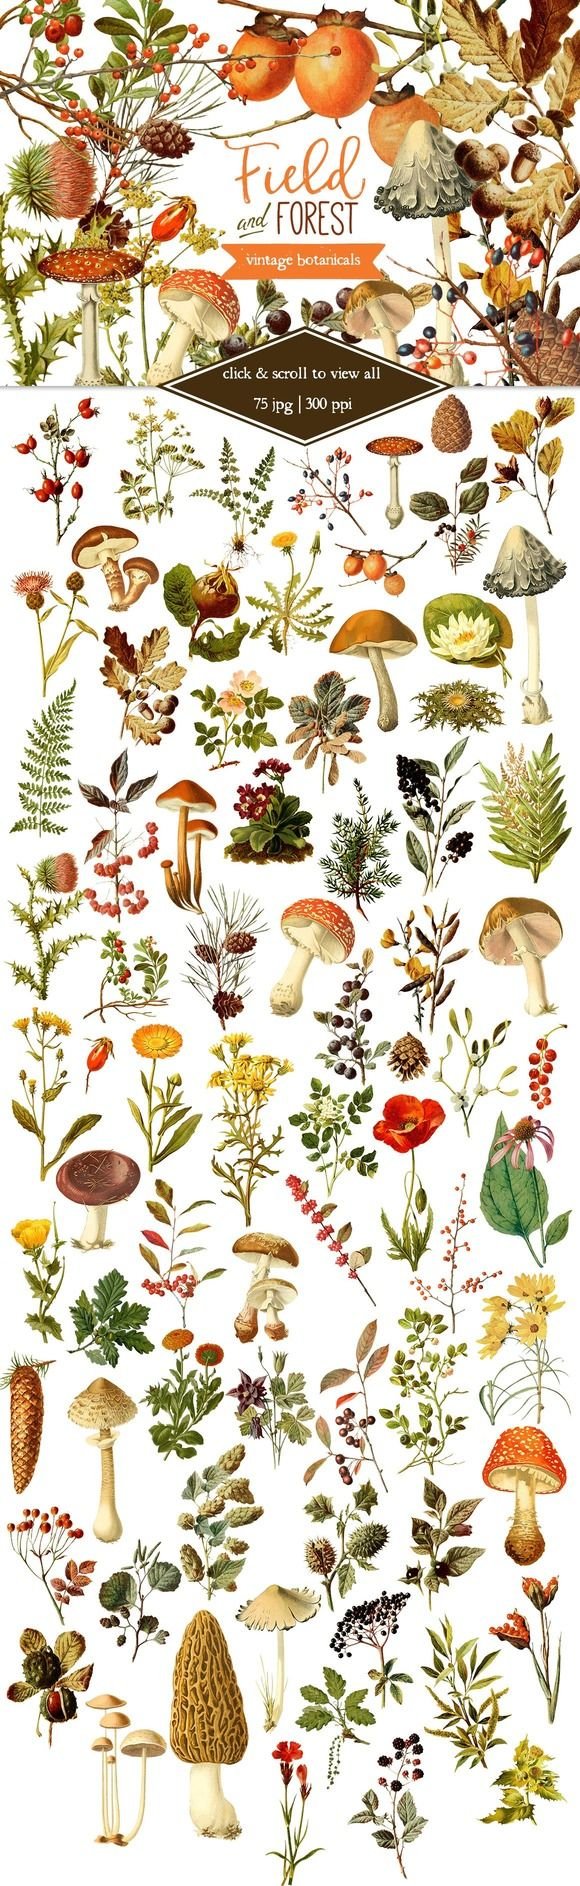 Field & Forest Vintage Botanicals by Eclectic Anthology on @creativemarket